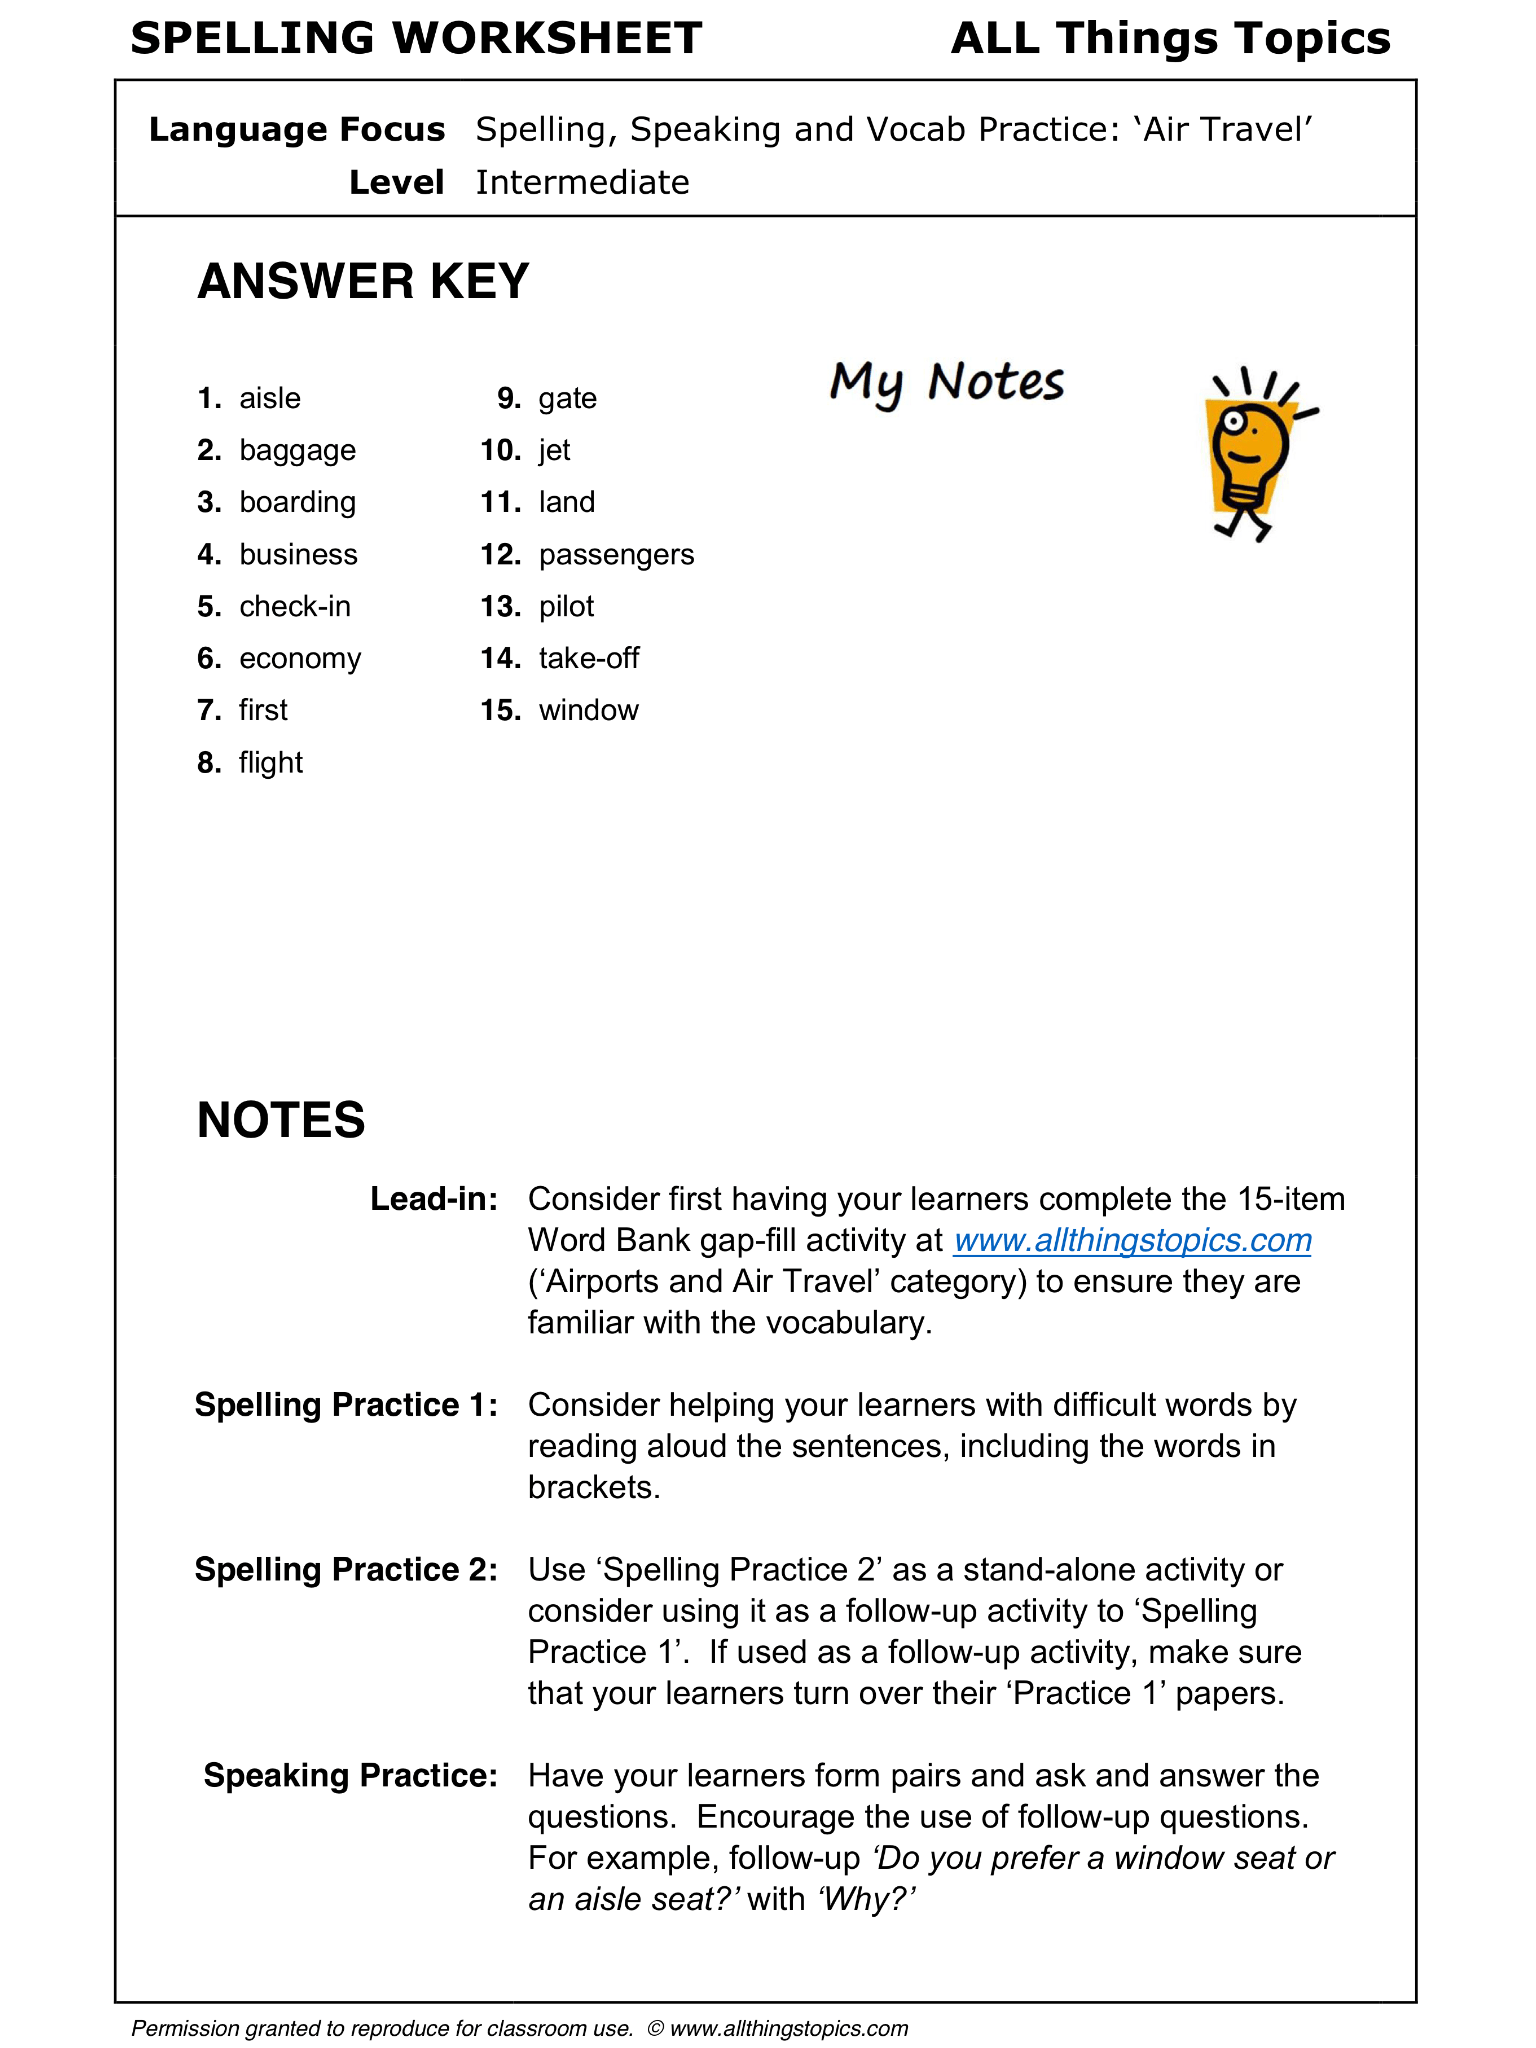 Airports And Air Travel Spelling Worksheet Air Travel 1 2 English Learning English Vocabulary